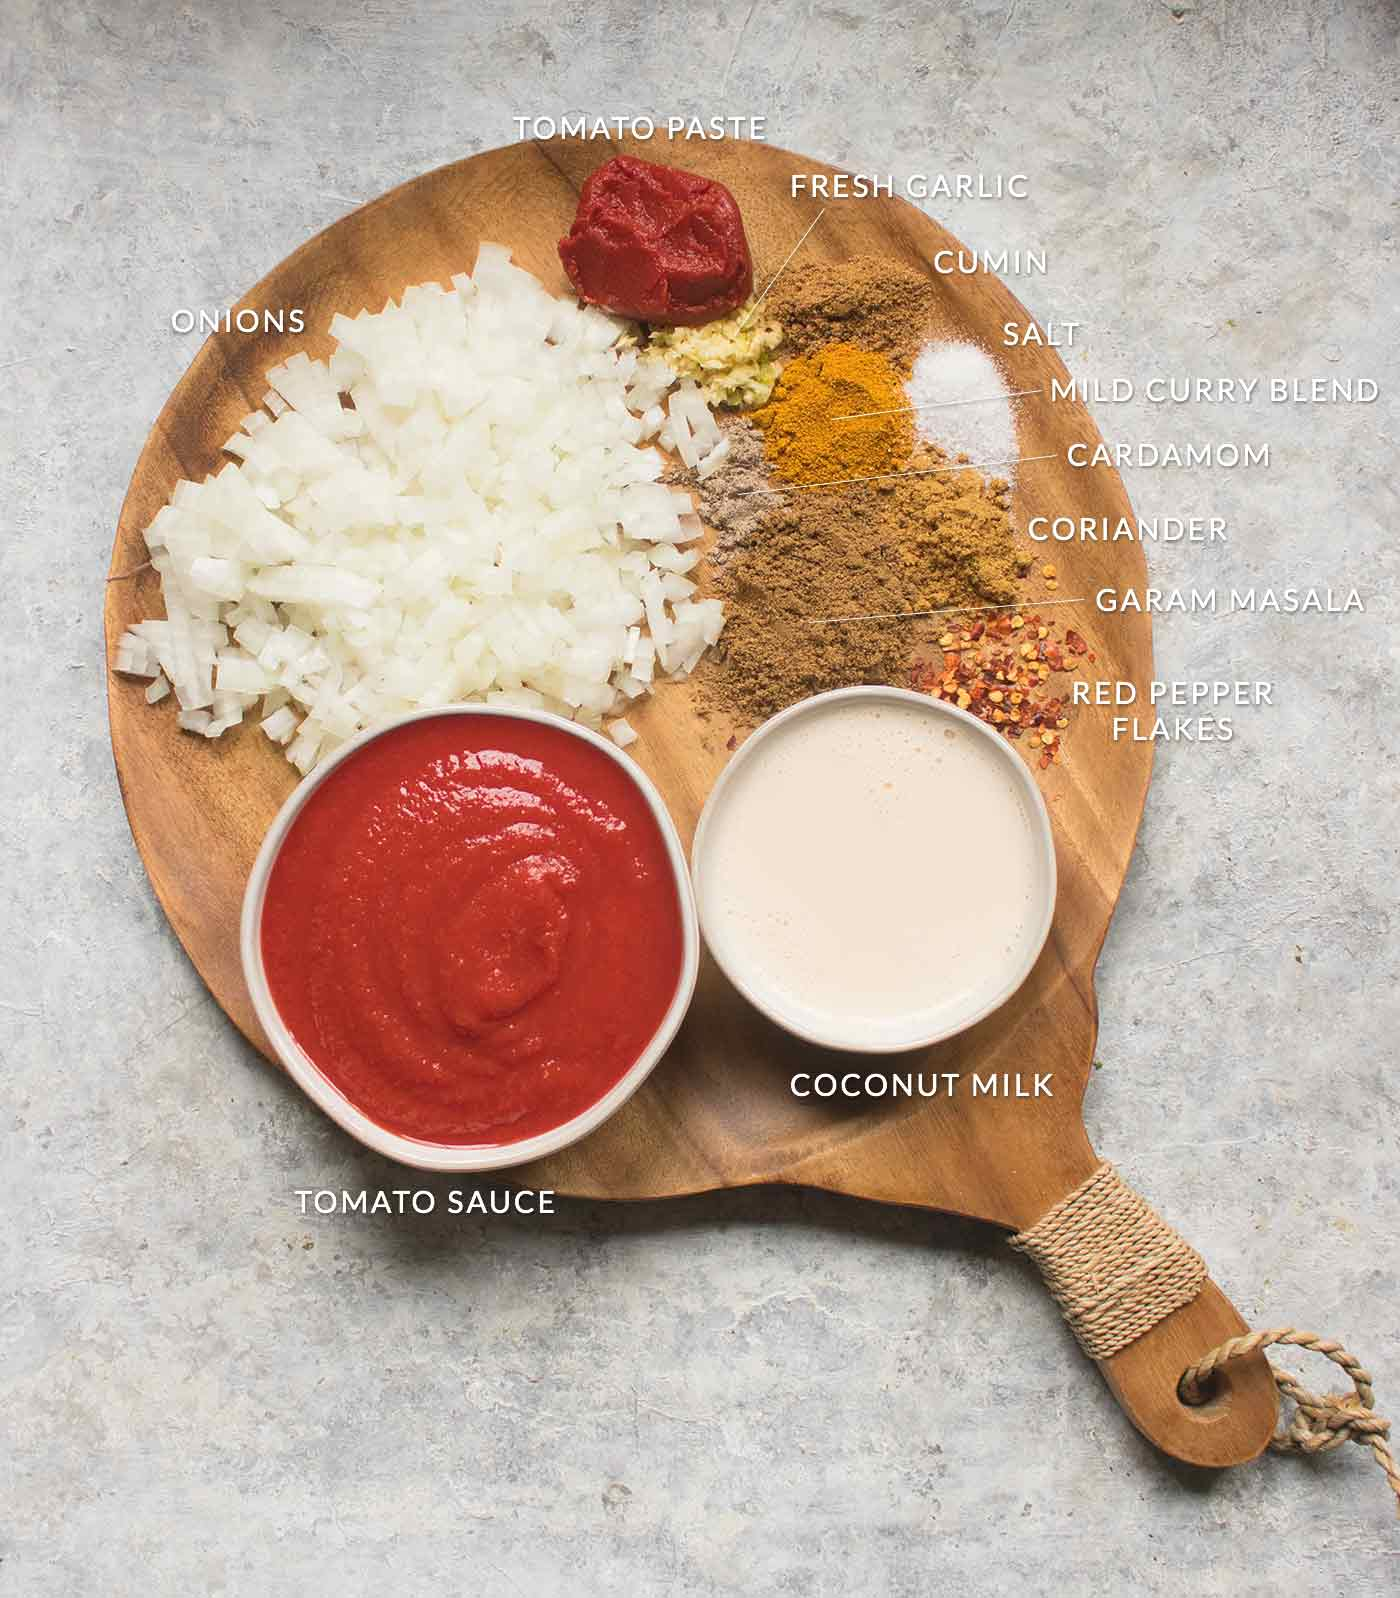 Ingredients for the masala sauce on a wooden board